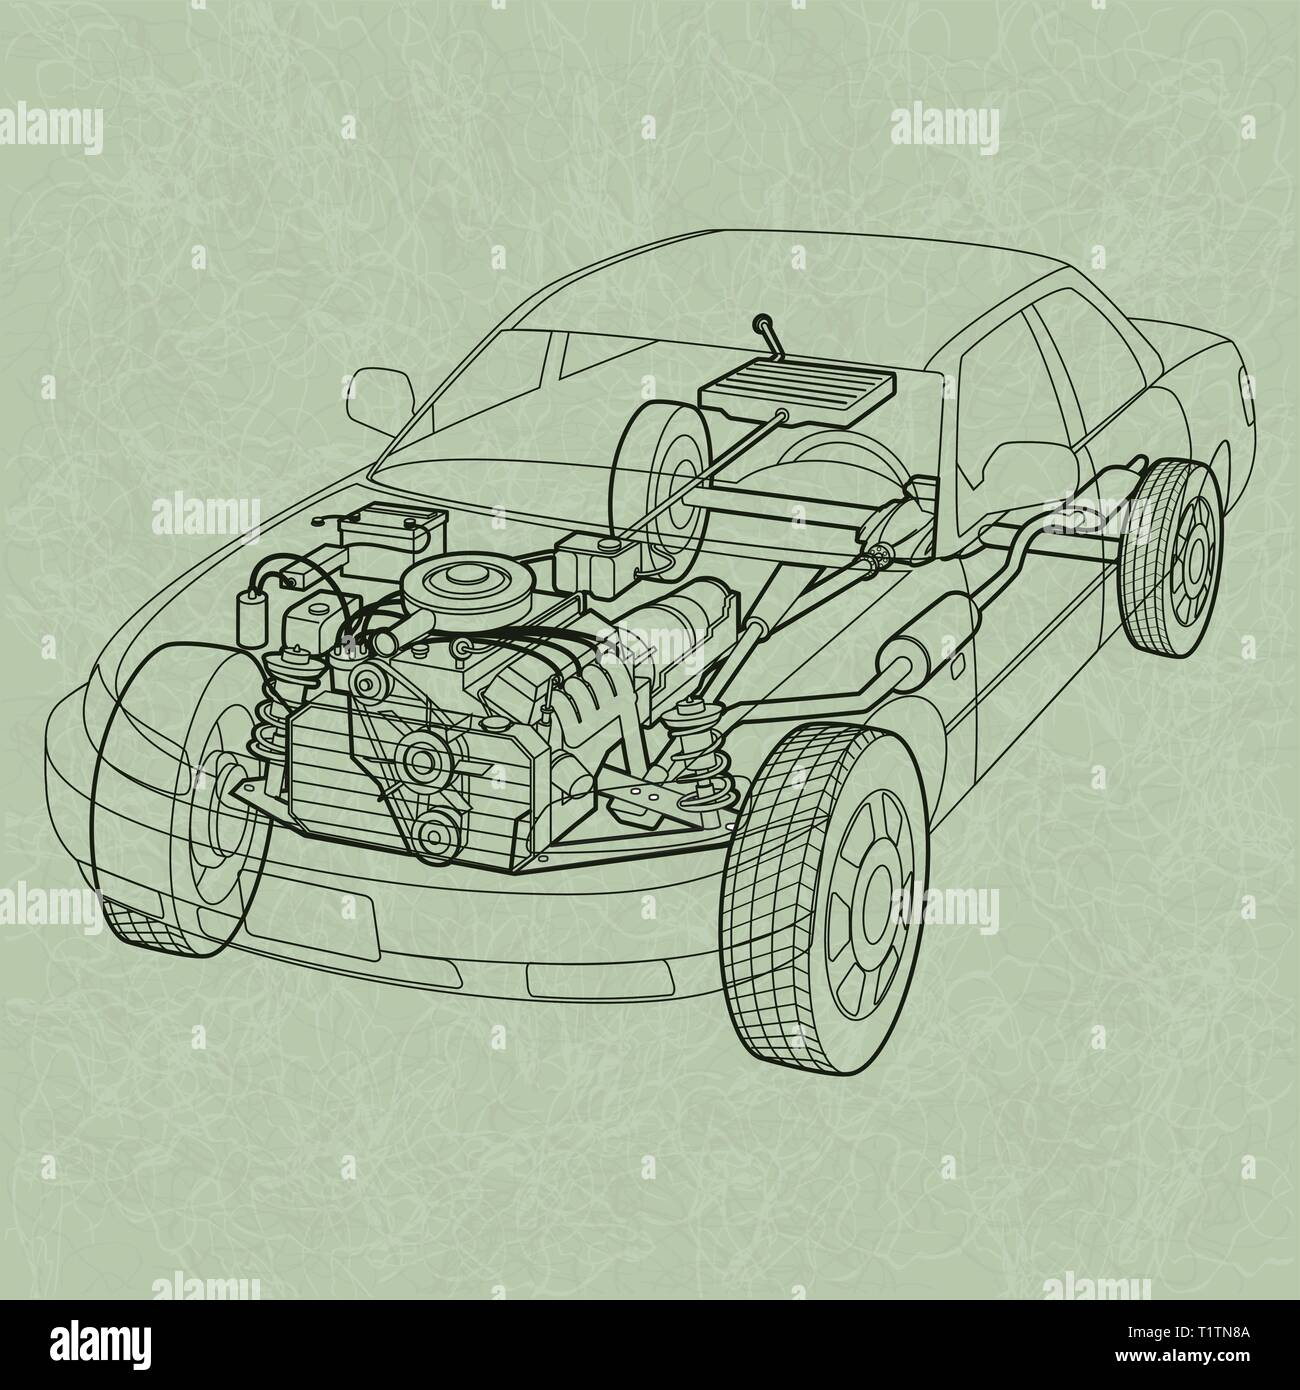 Diagram  Vw Car Engine Diagram Full Version Hd Quality Engine Diagram